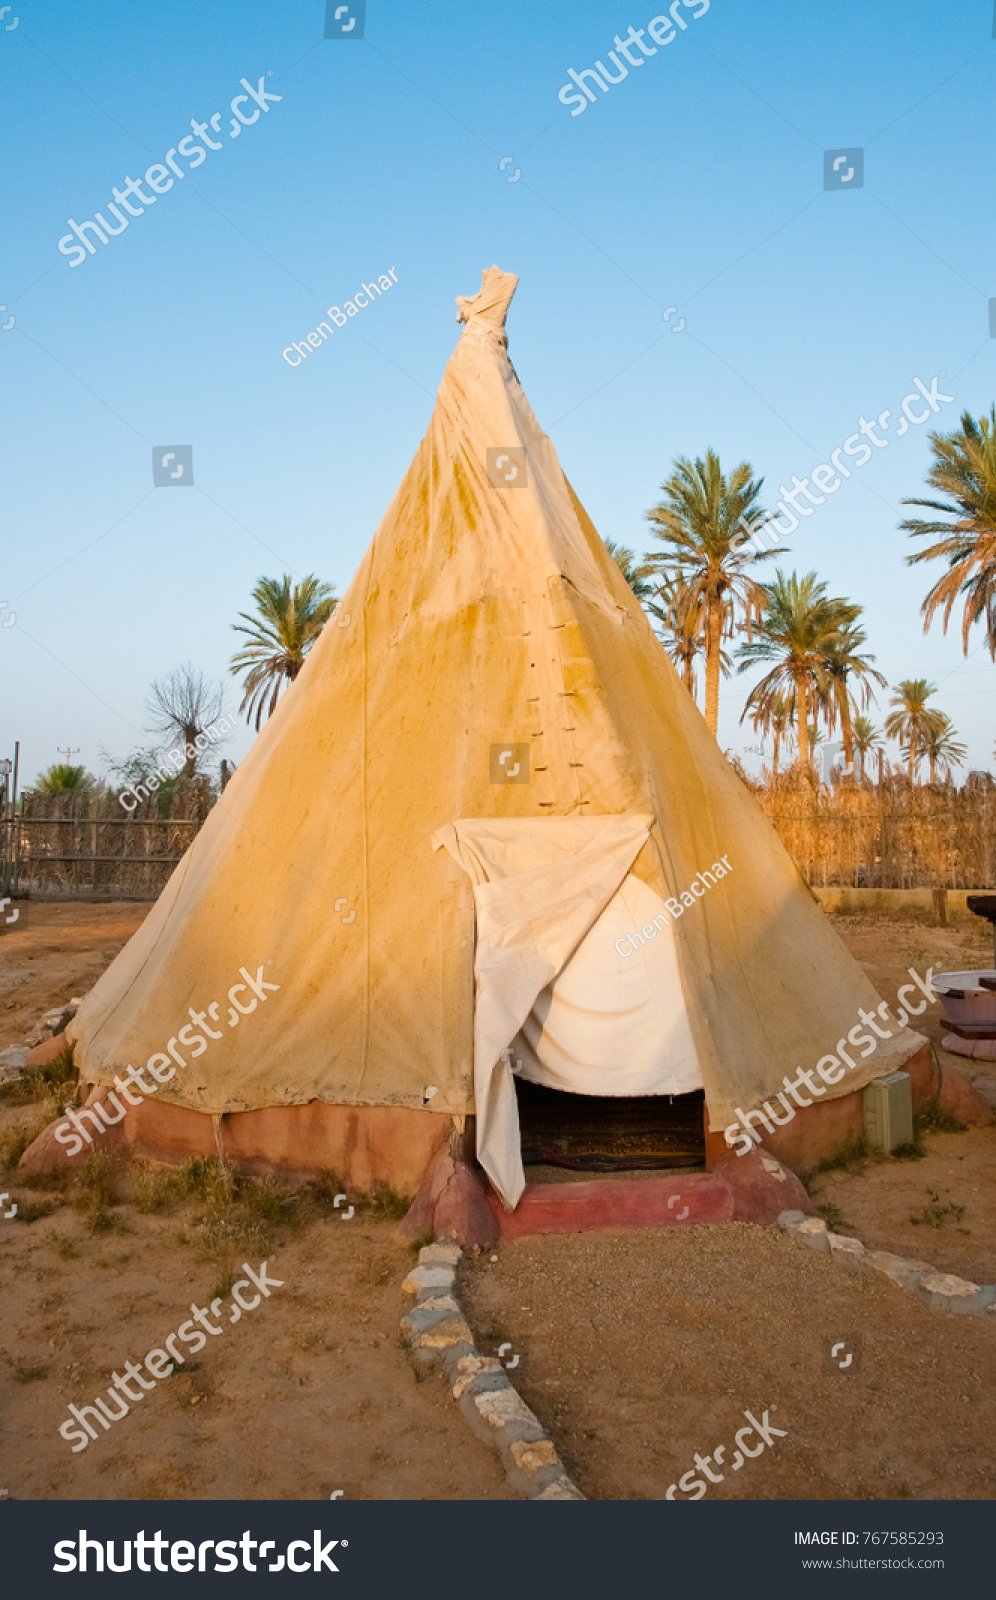 native american indian tipi tent & Native American Indian Tipi Tent Stock Photo 767585293 - Shutterstock